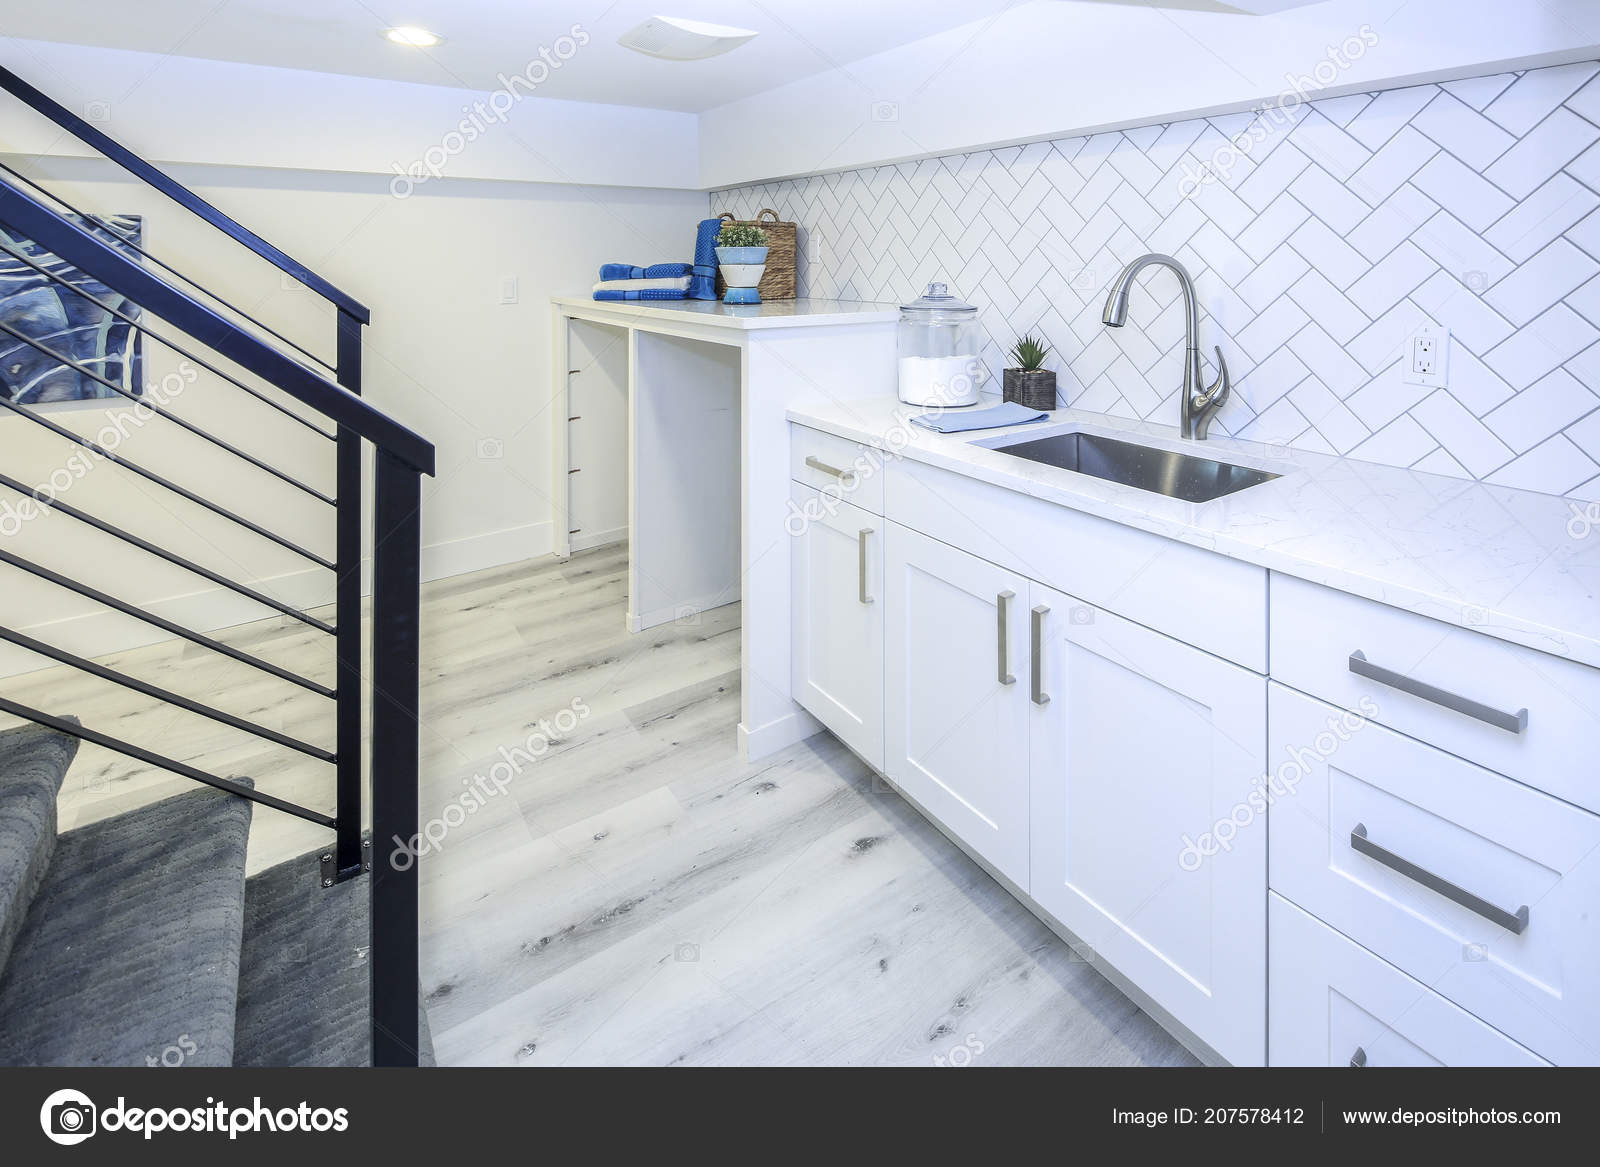 Prime Basement Laundry Room Interior Sink White Cabinets Stock Interior Design Ideas Gentotryabchikinfo